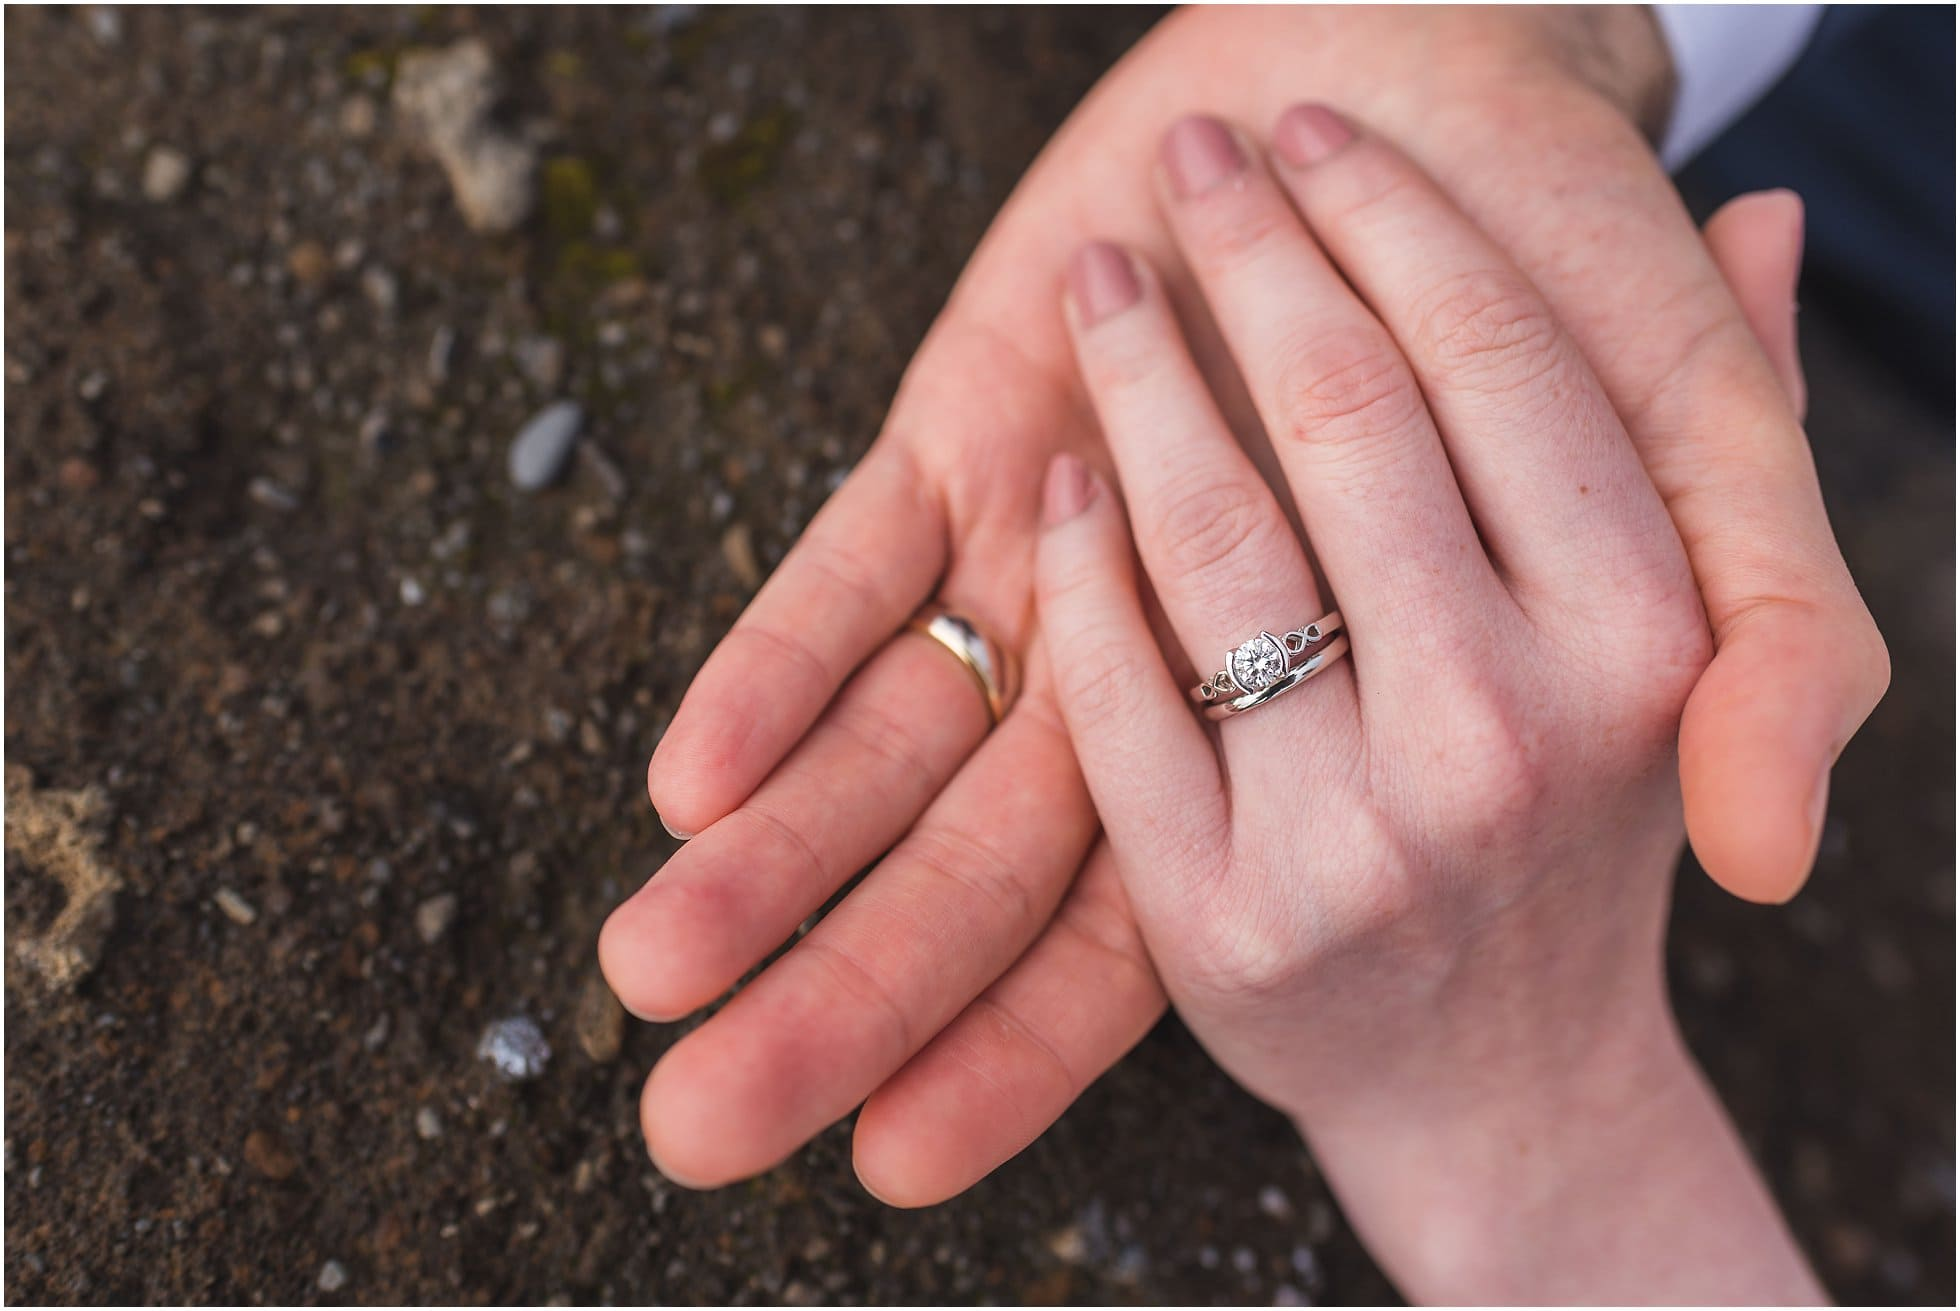 Volcanic rock and wedding rings